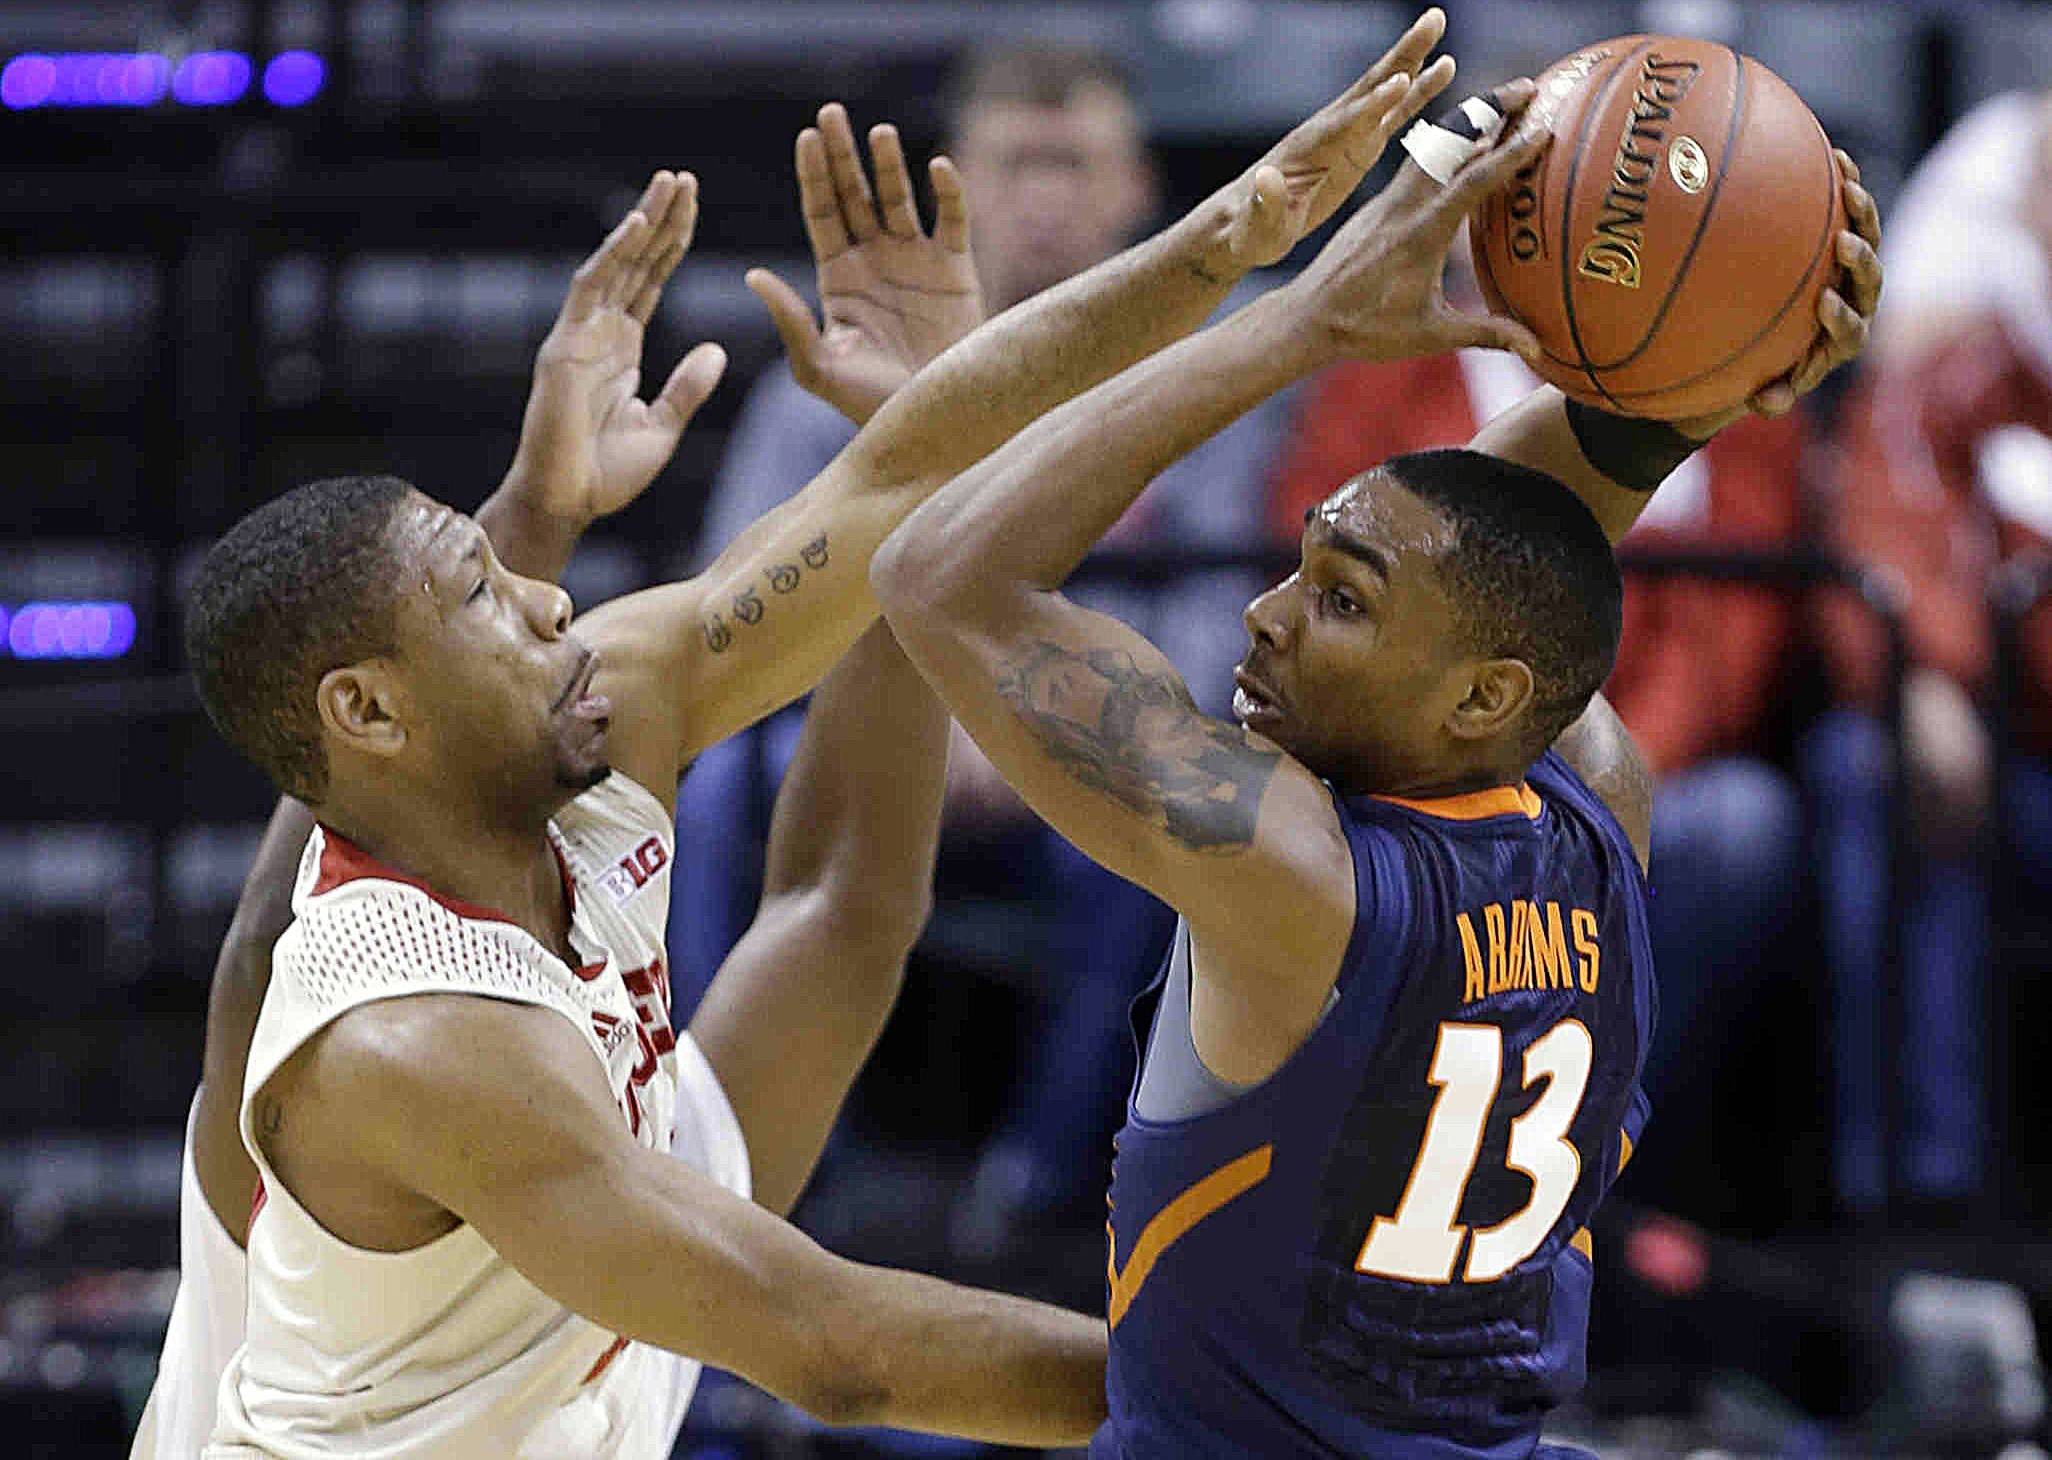 Illinois guard Tracy Abrams looks to pass against Indiana's Evan Gordon Thursday during the first half in the first round of the Big Ten tournament in Indianapolis.